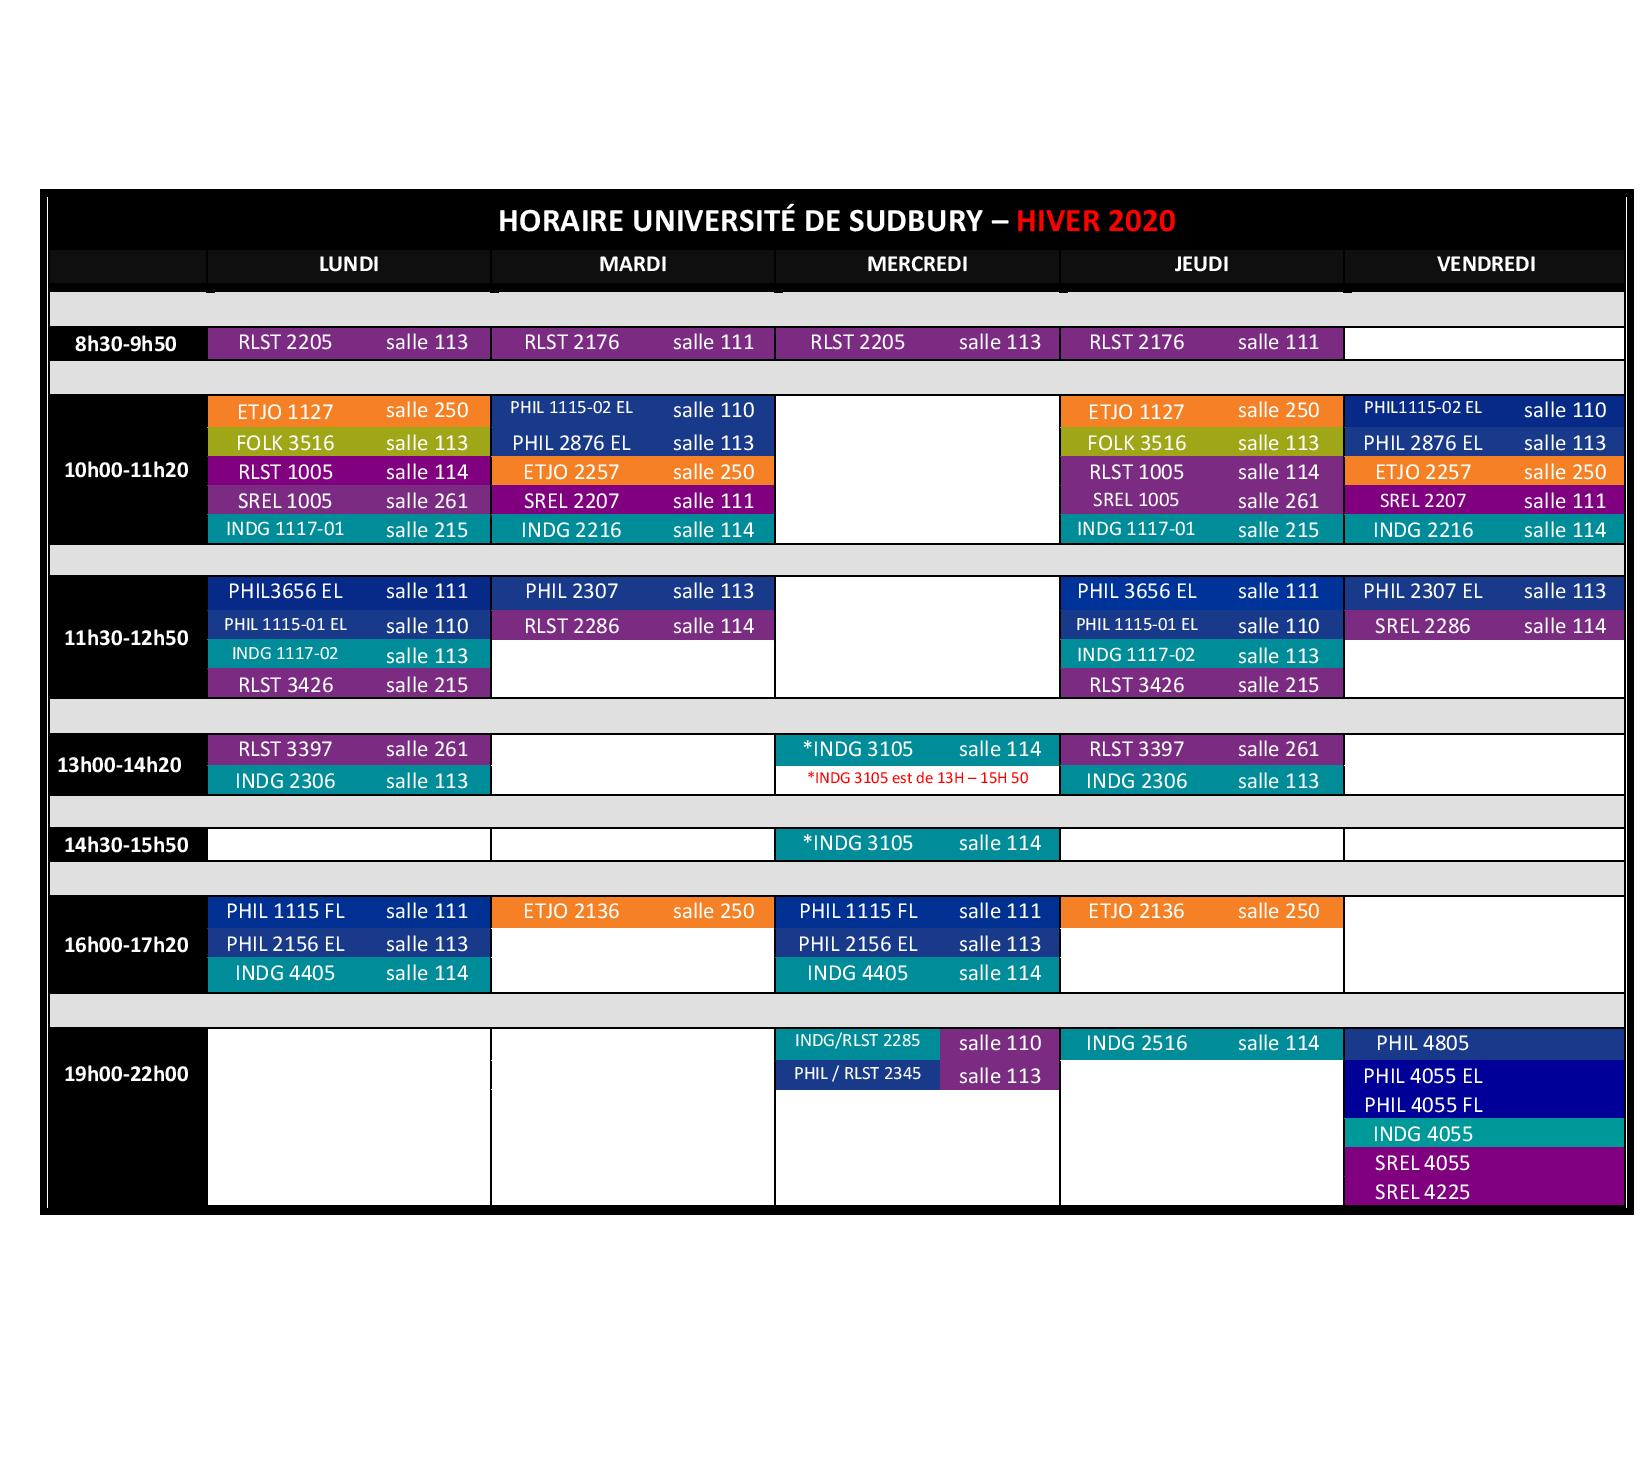 UNIVERSITY OF SUDBURY TIMETABLE 2018 2019 FR 4